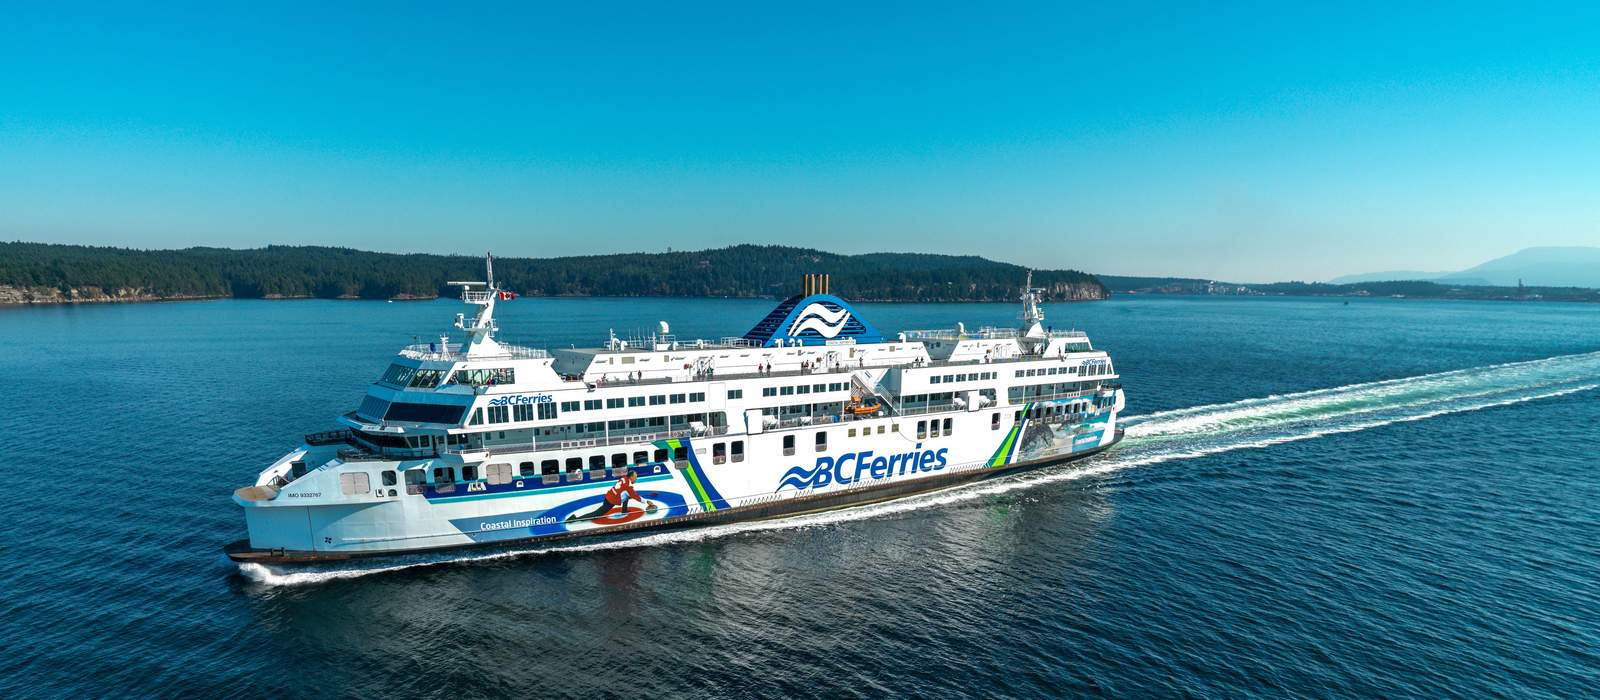 Coastal Inspiration der BC Ferries